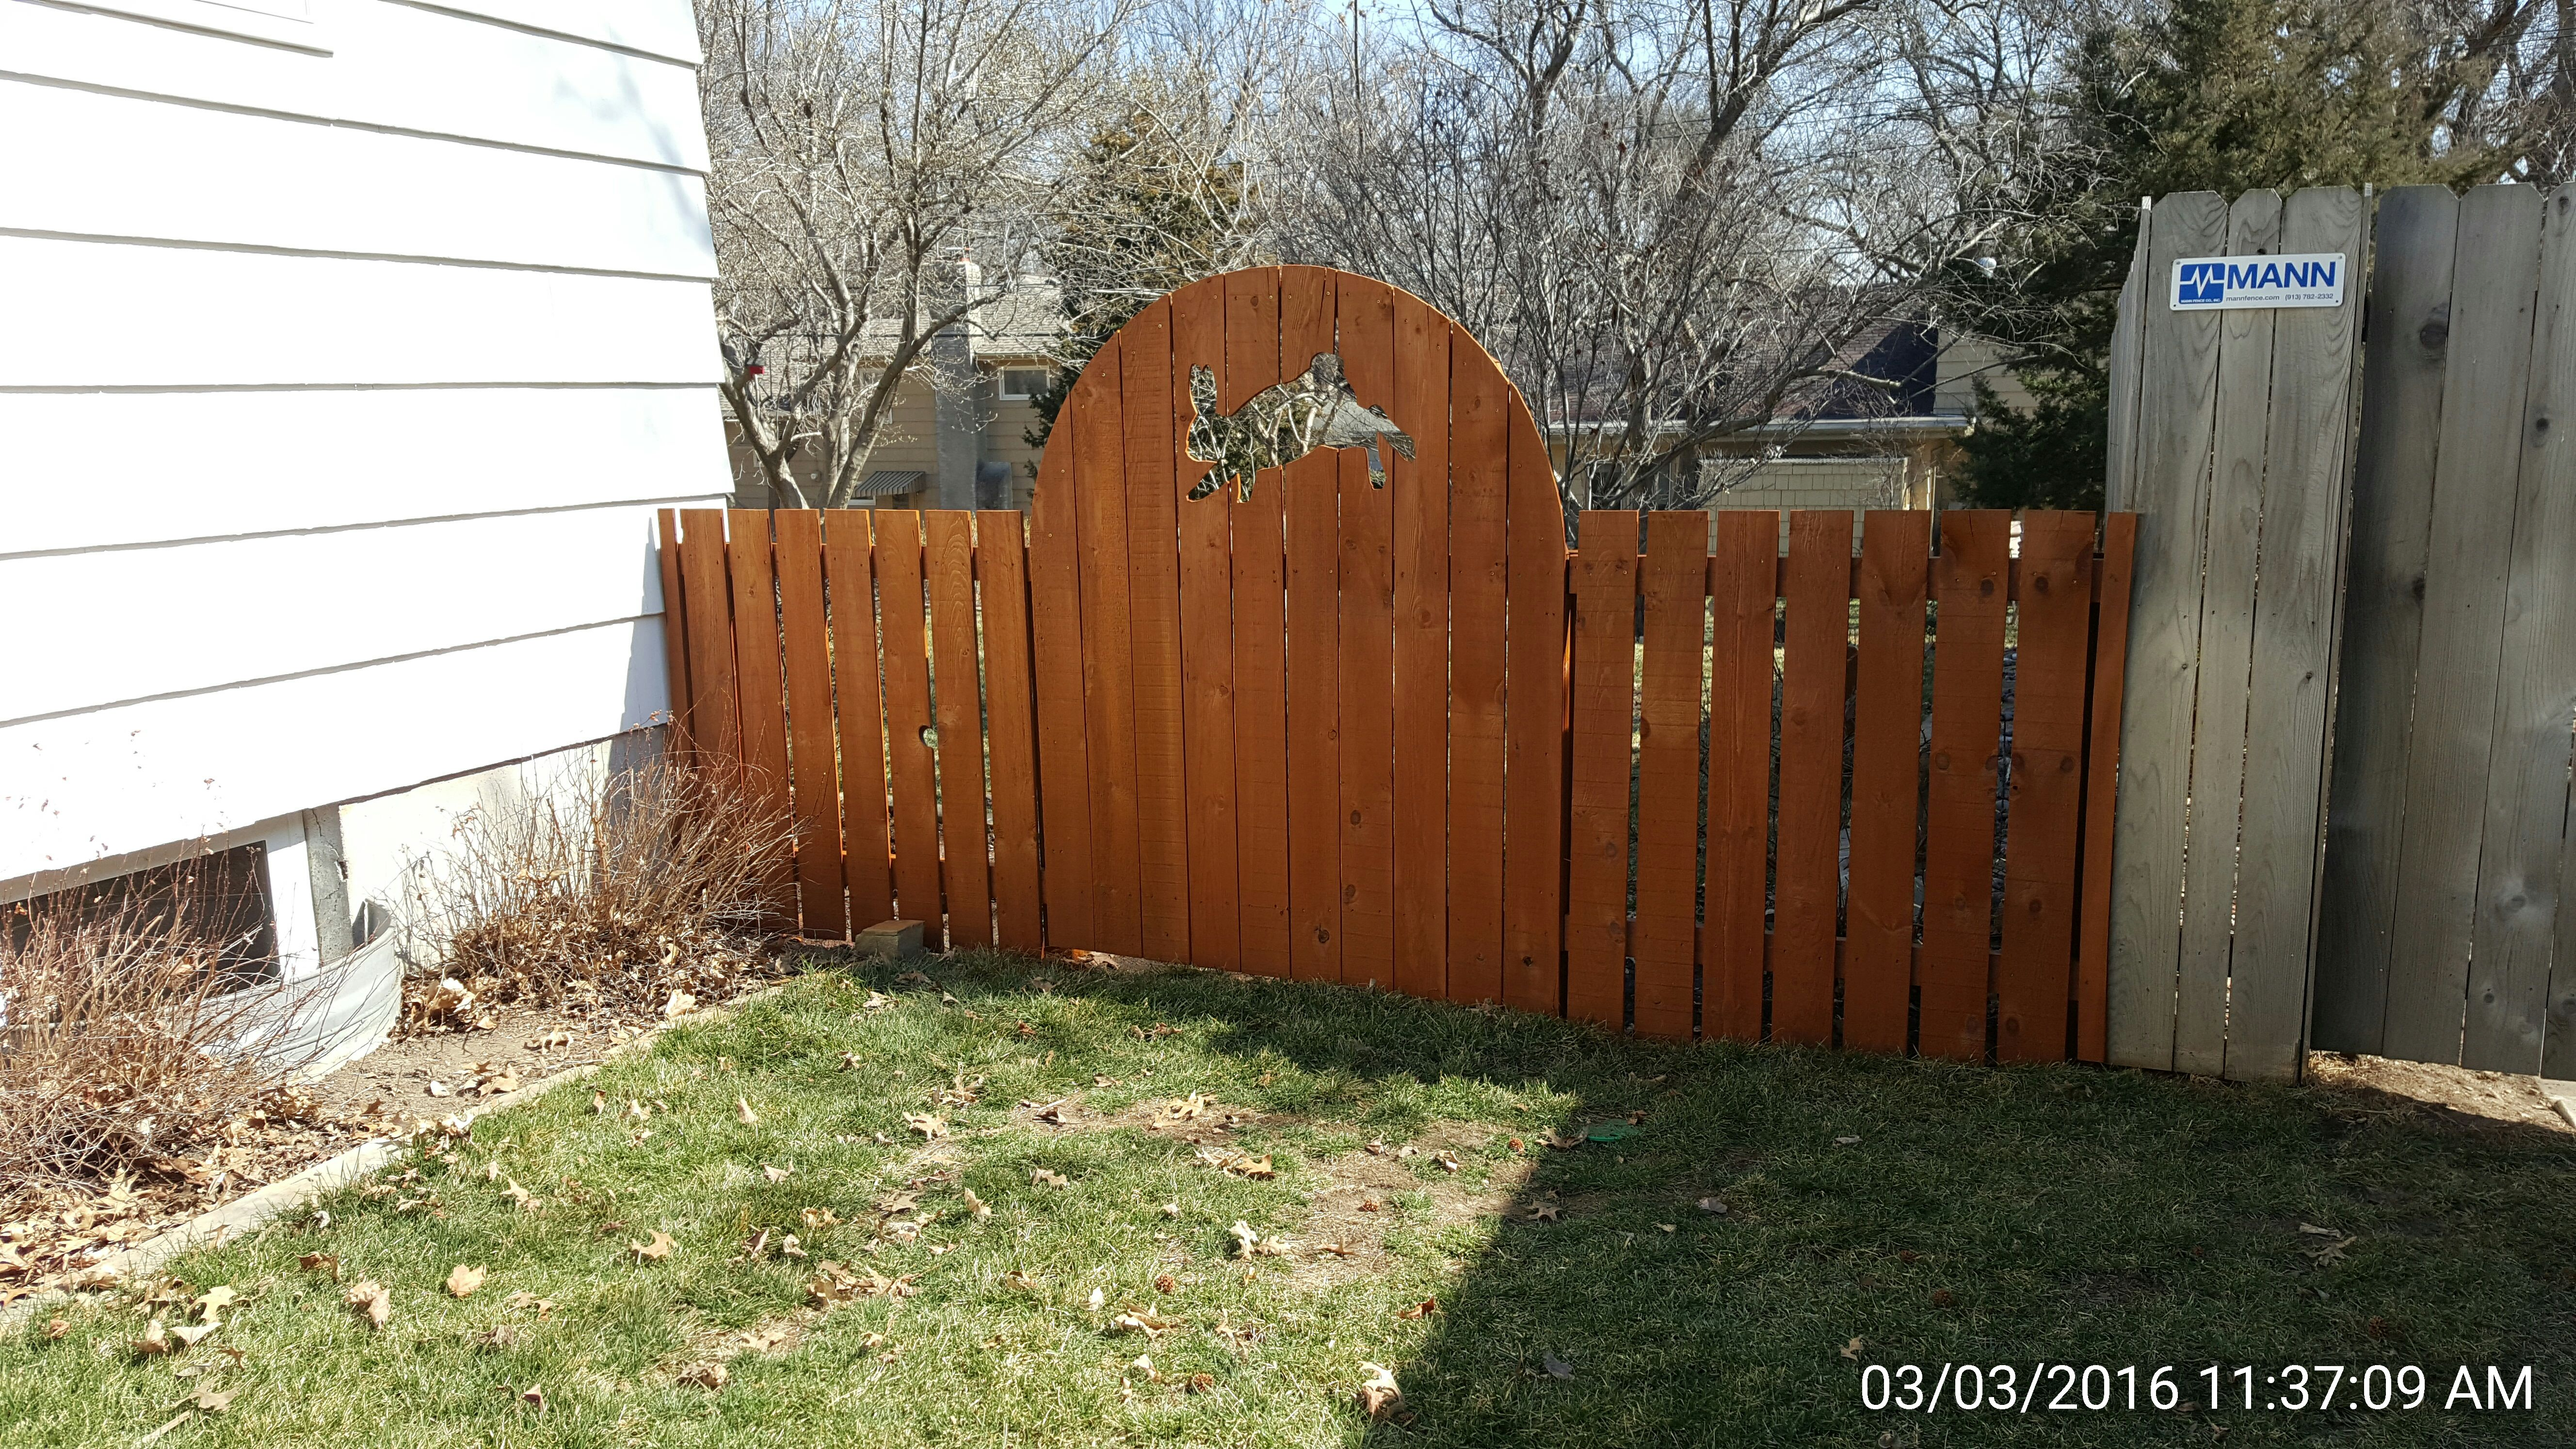 After fence cleaning by Renew Crew of Johnson County